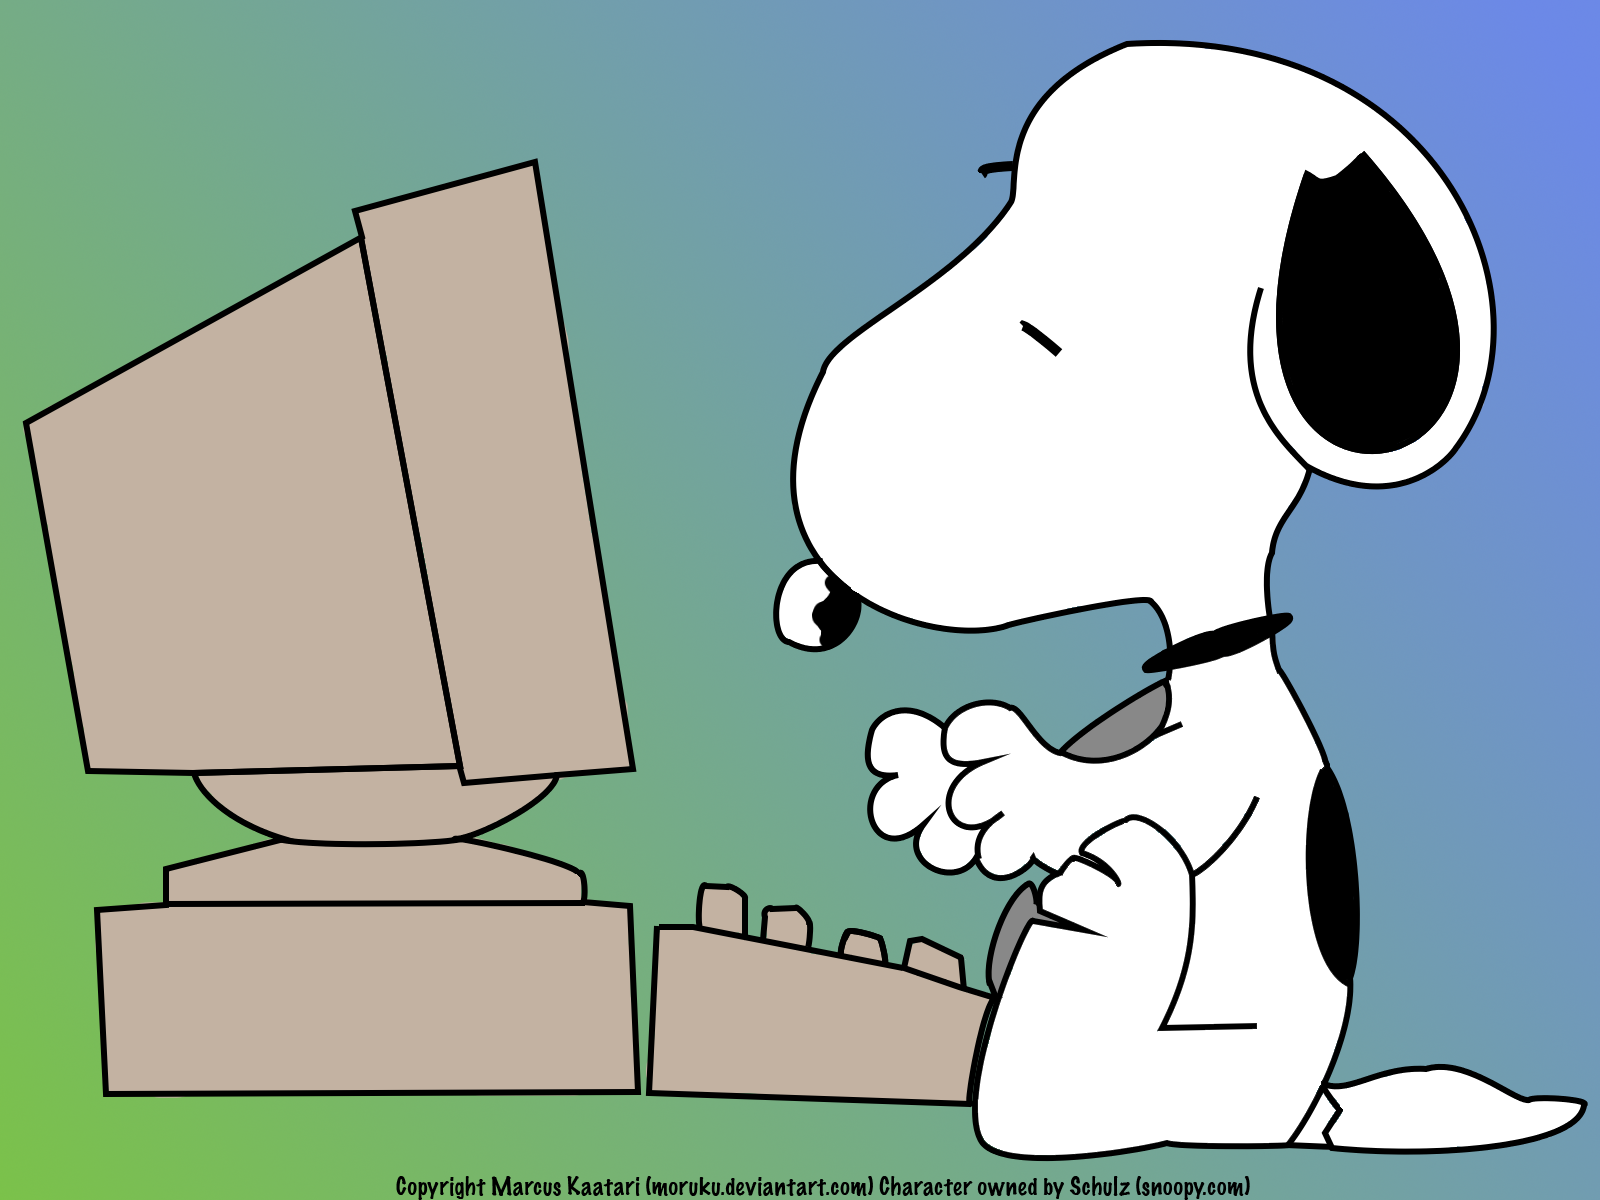 Cool Wallpapers Collection: Snoopy Desktop Wallpapers